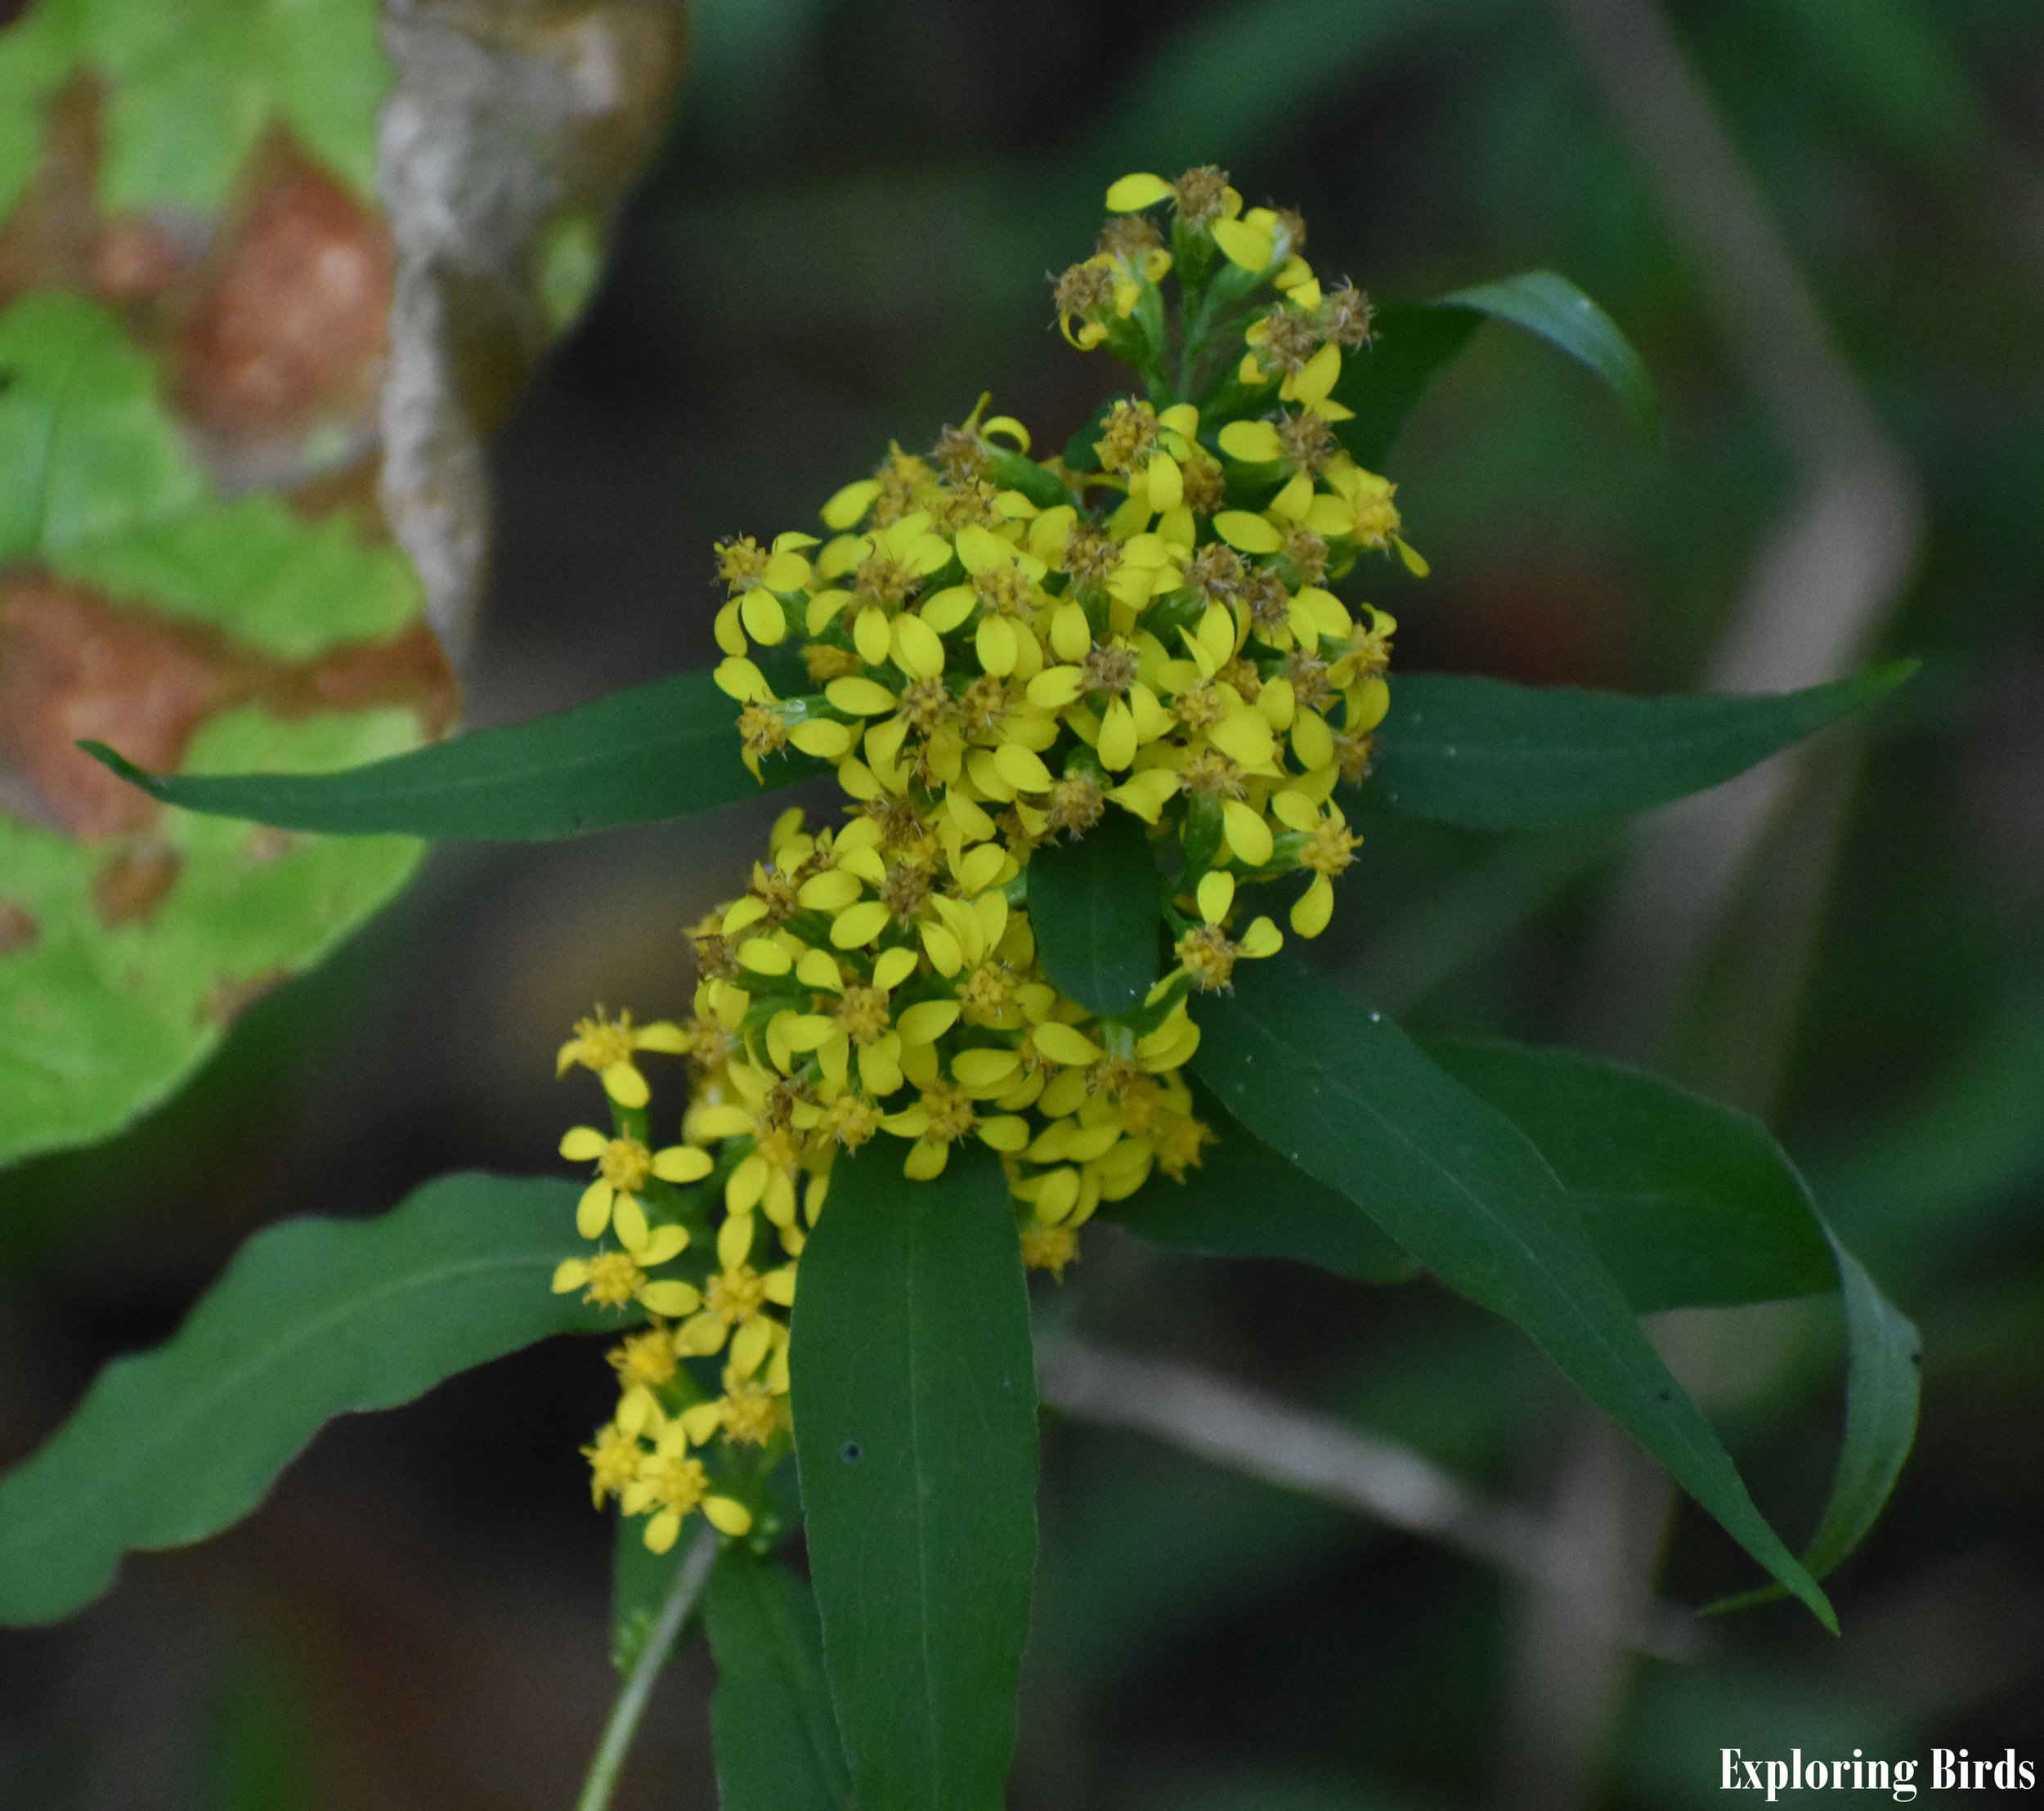 Goldenrod is one of the best best flowers for attracting birds